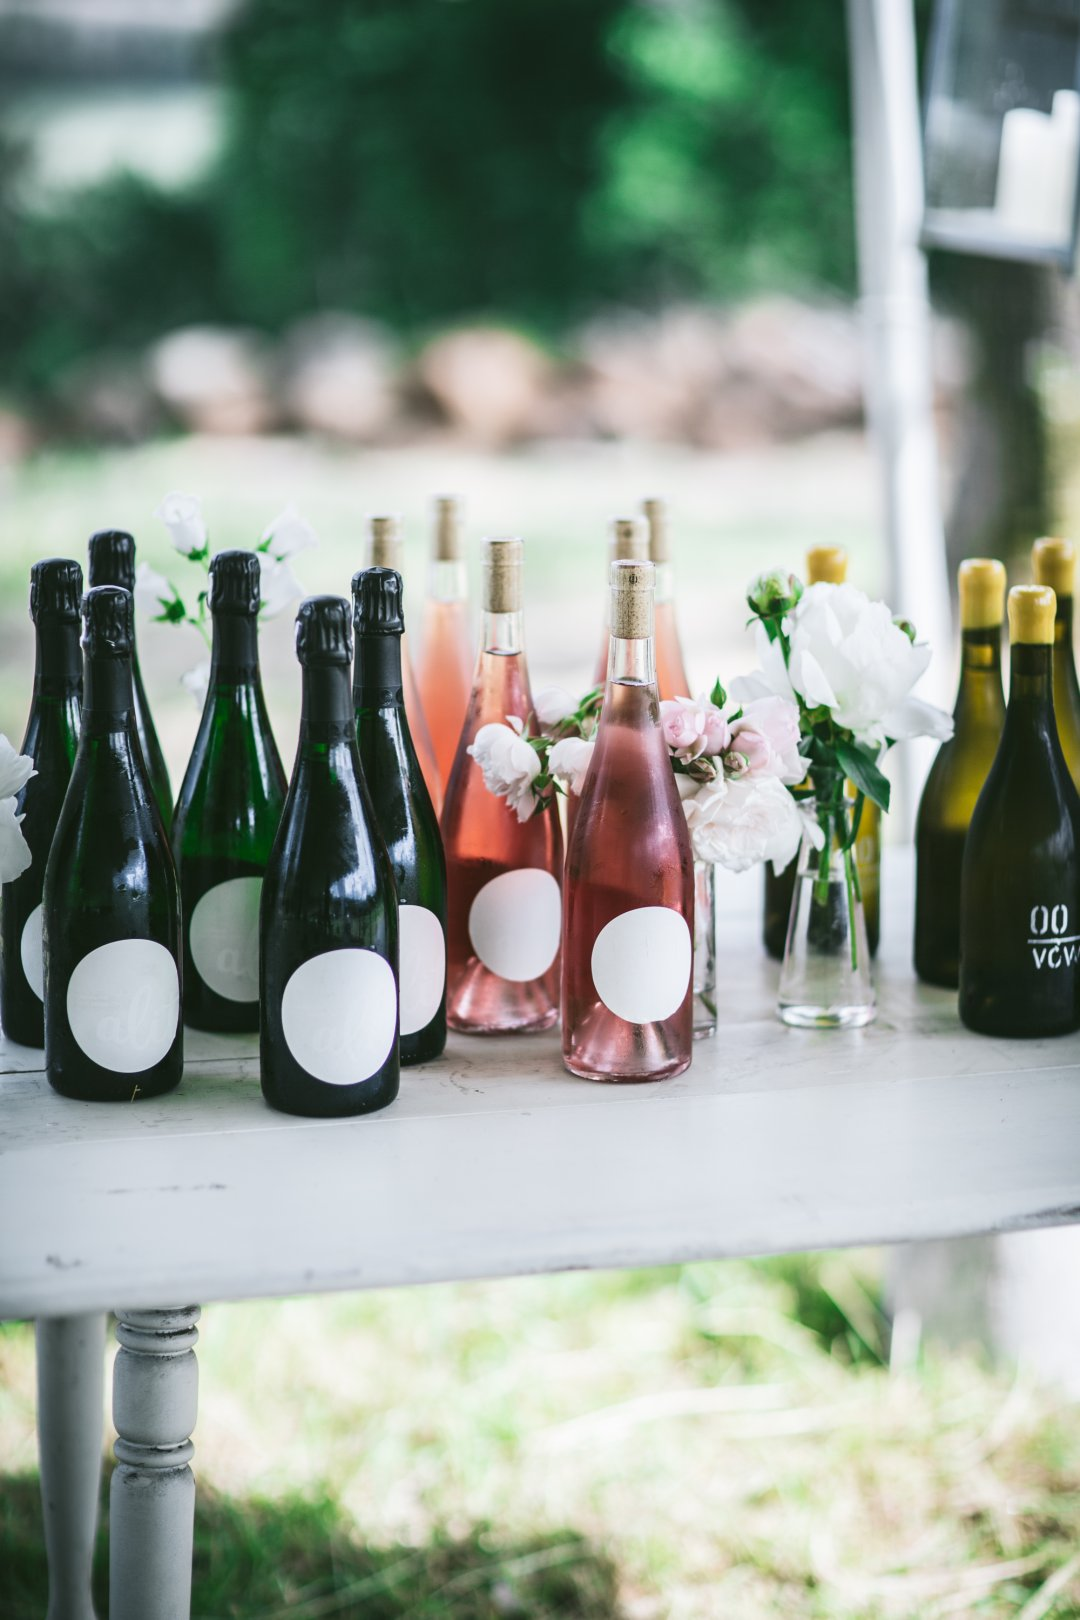 Chilled Champagne and Rose bottles on table